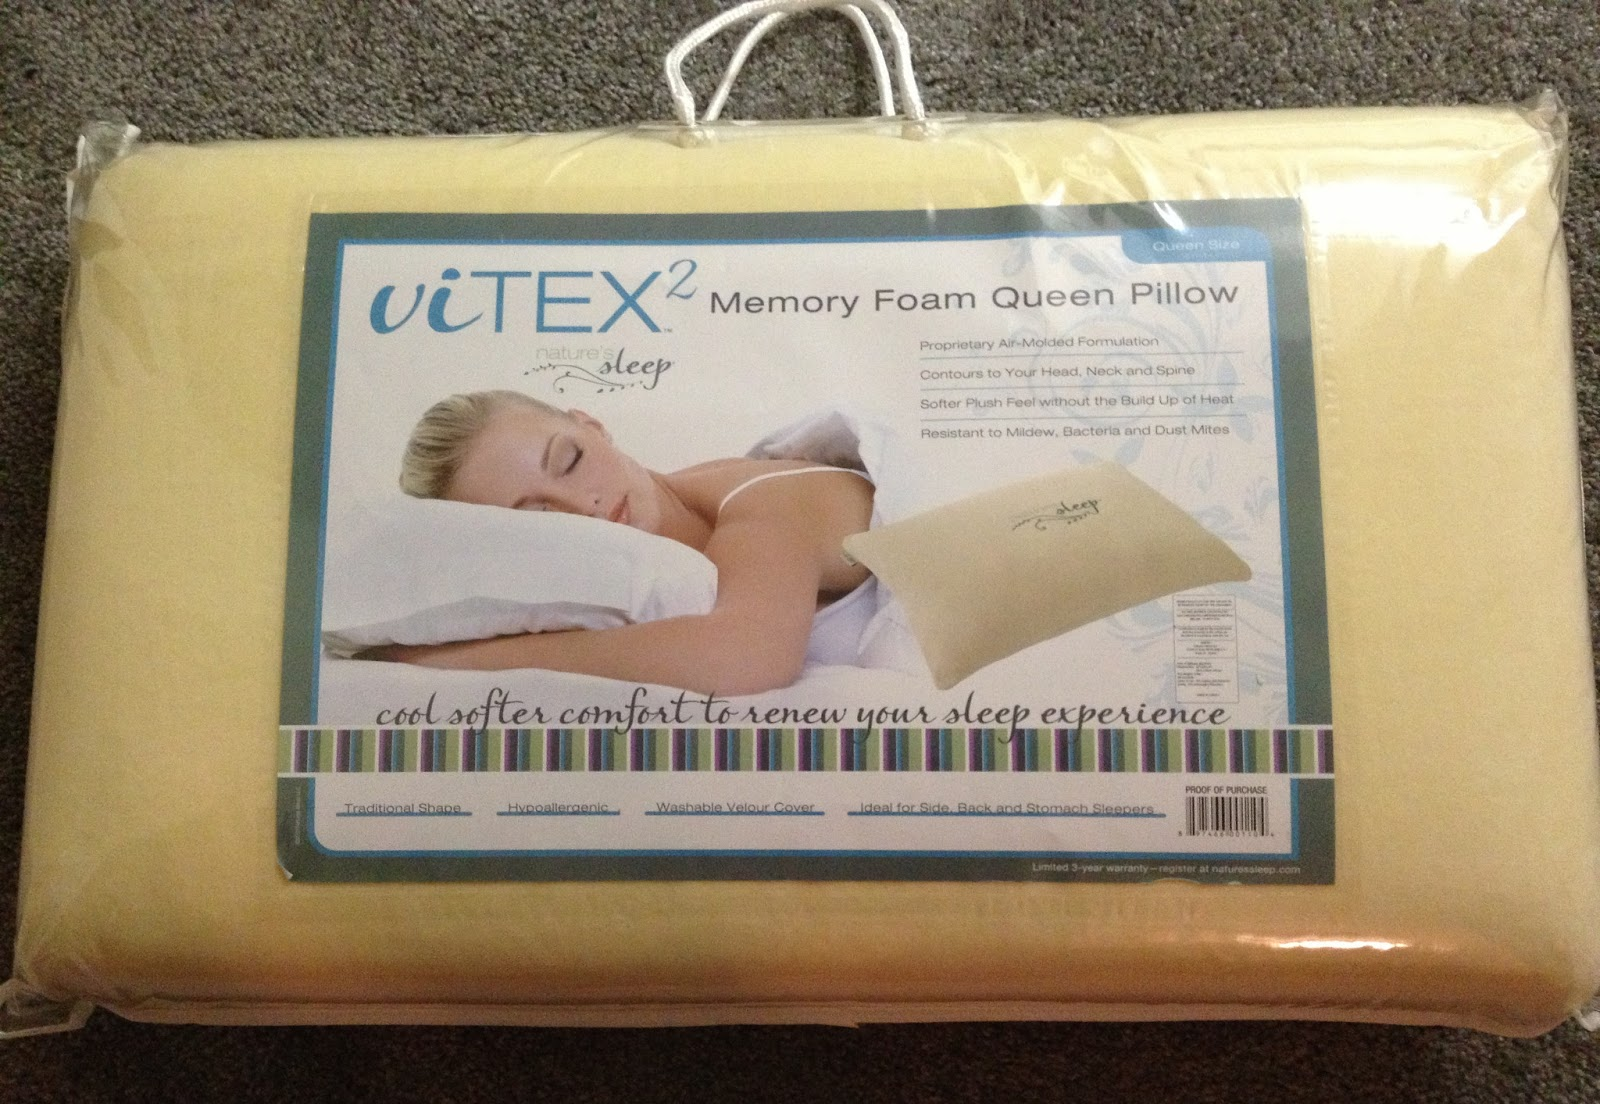 Irish Italian Blessings: Nature's Sleep Memory Foam Vitex 2 Pillow Review & Slippers Giveaway